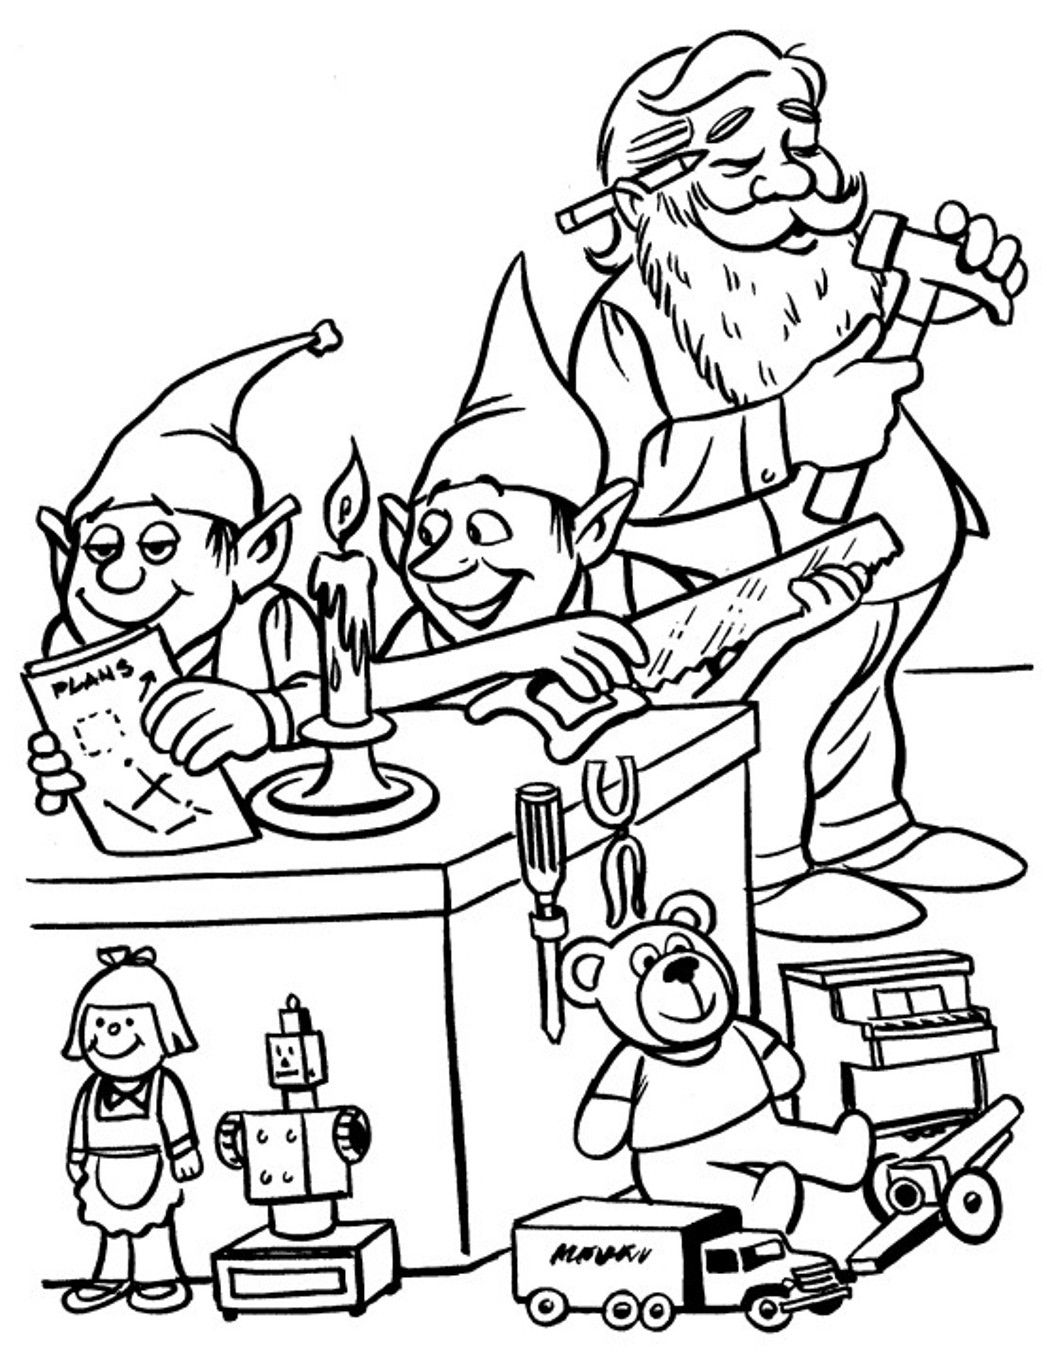 Christmas Coloring Pages Elf With Elves And Santa For Kids